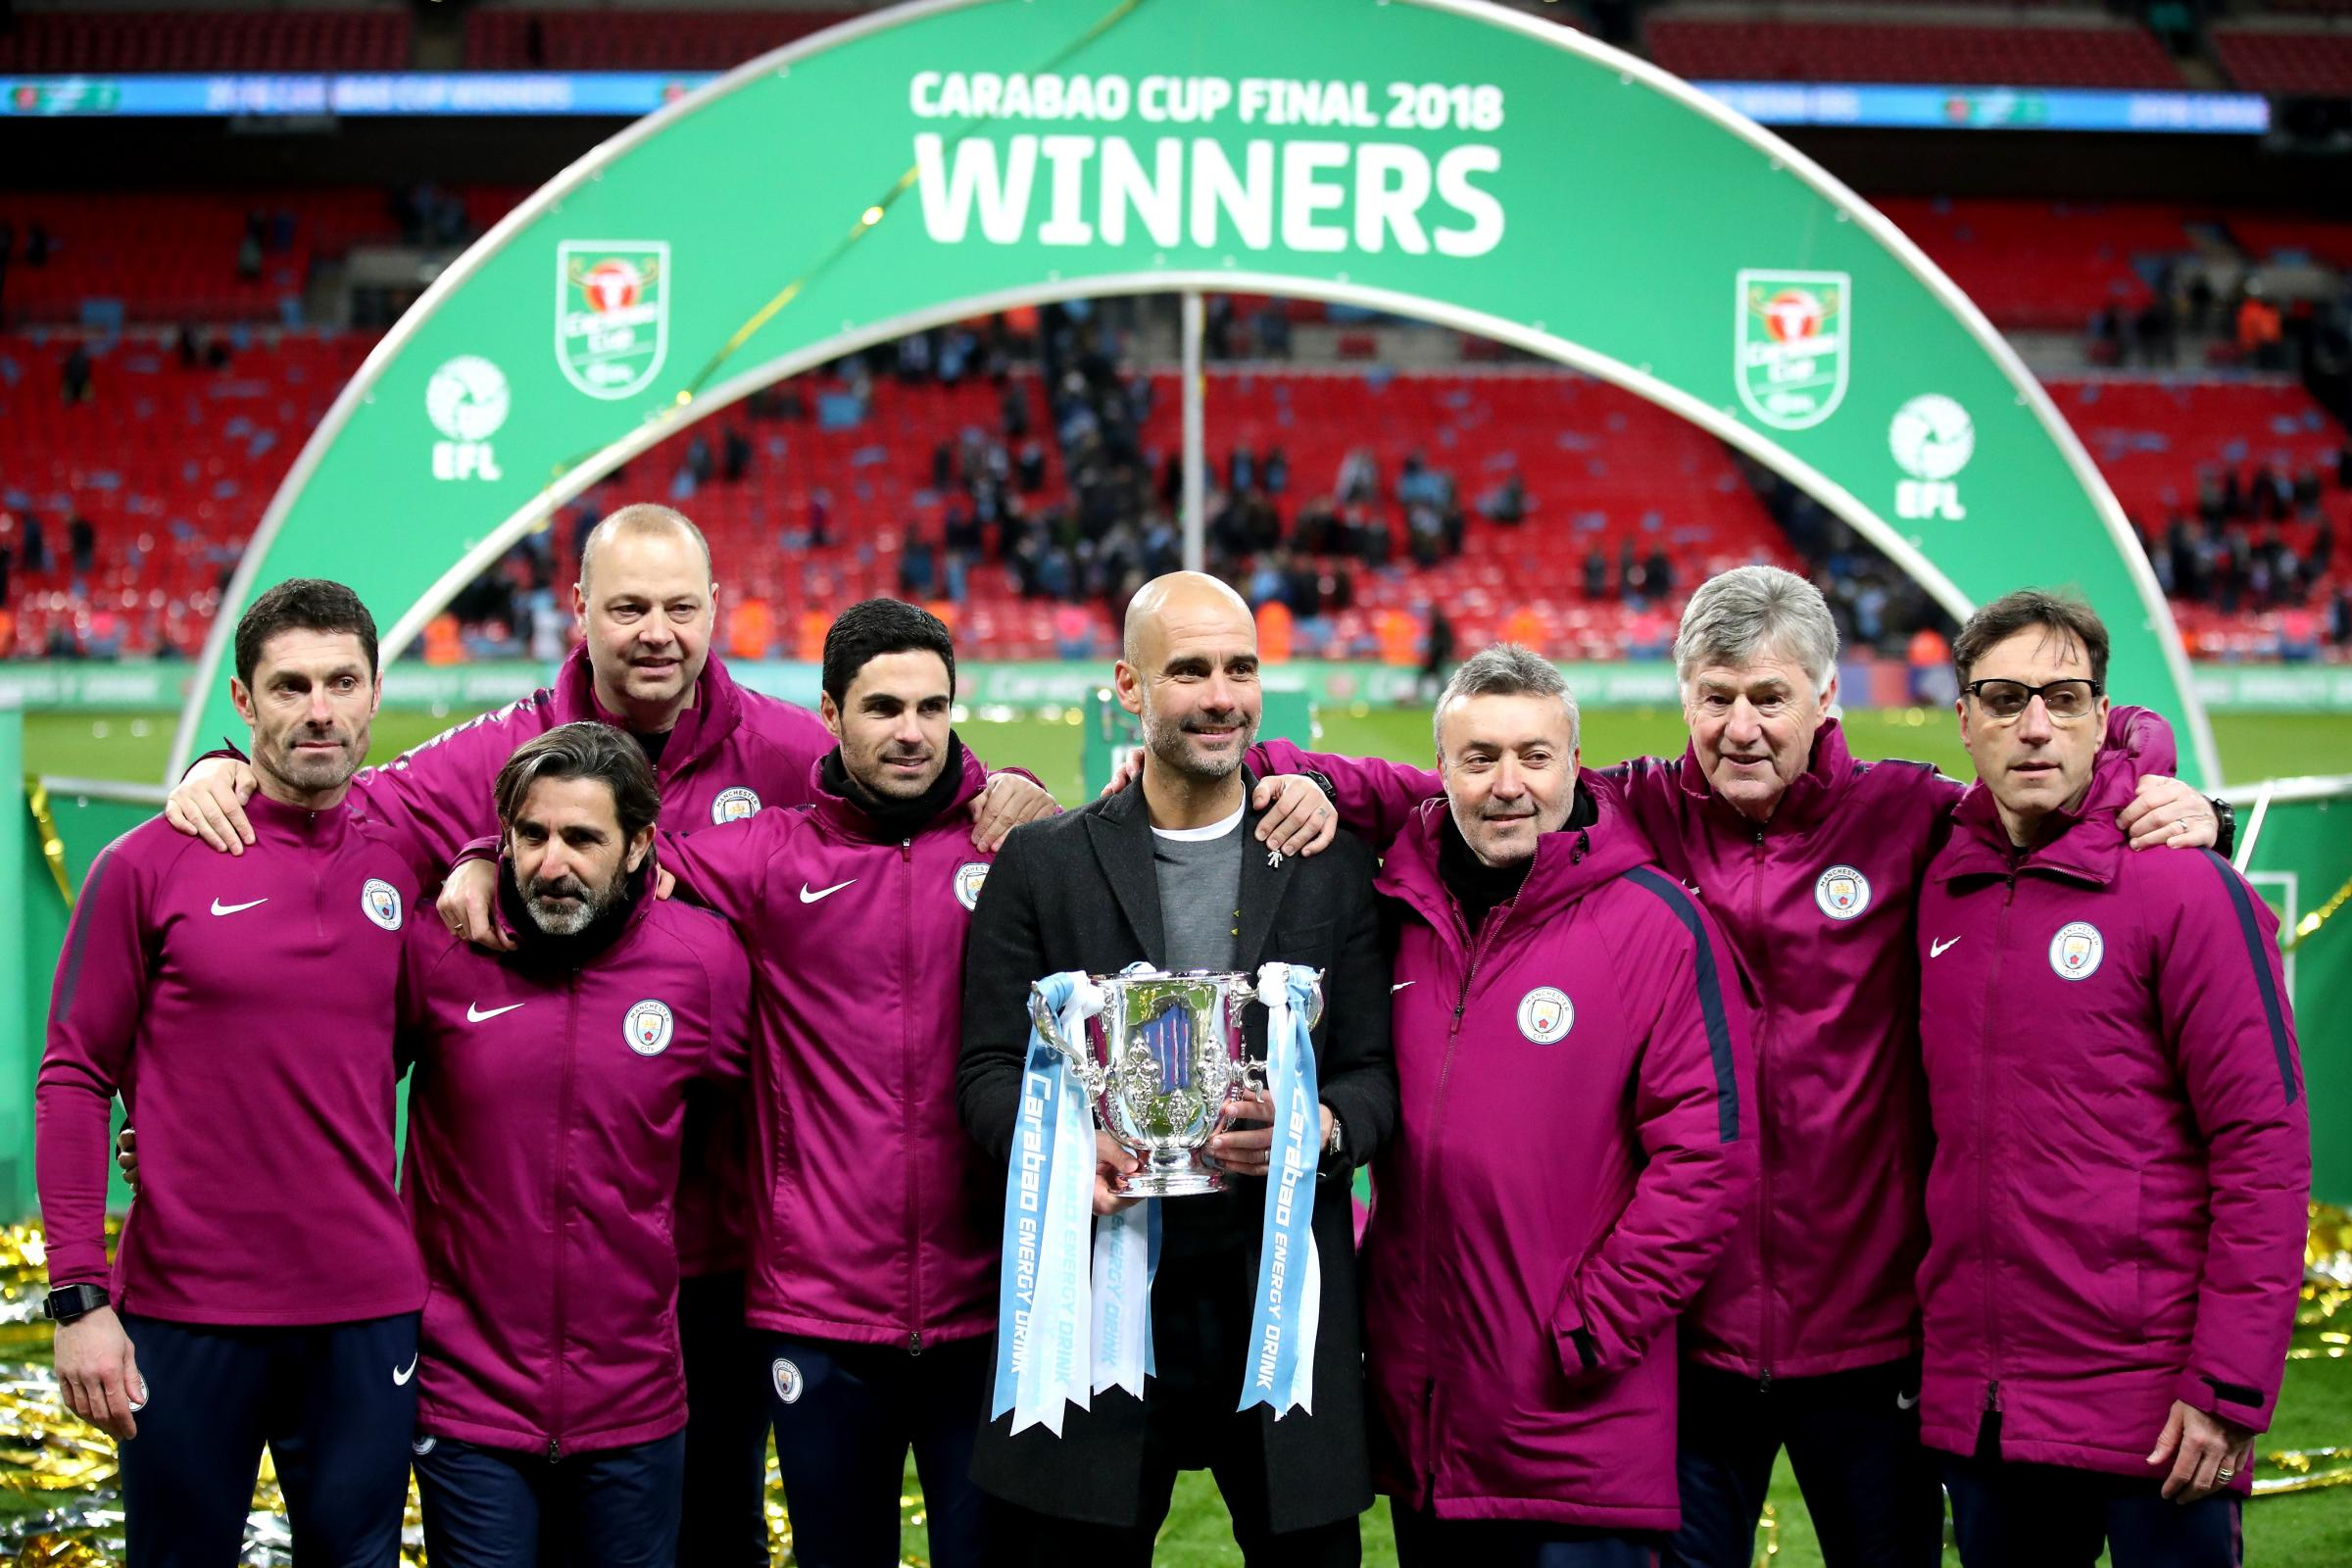 Pep Guardiola and Manchester City are bidding to retain the Carabao Cup